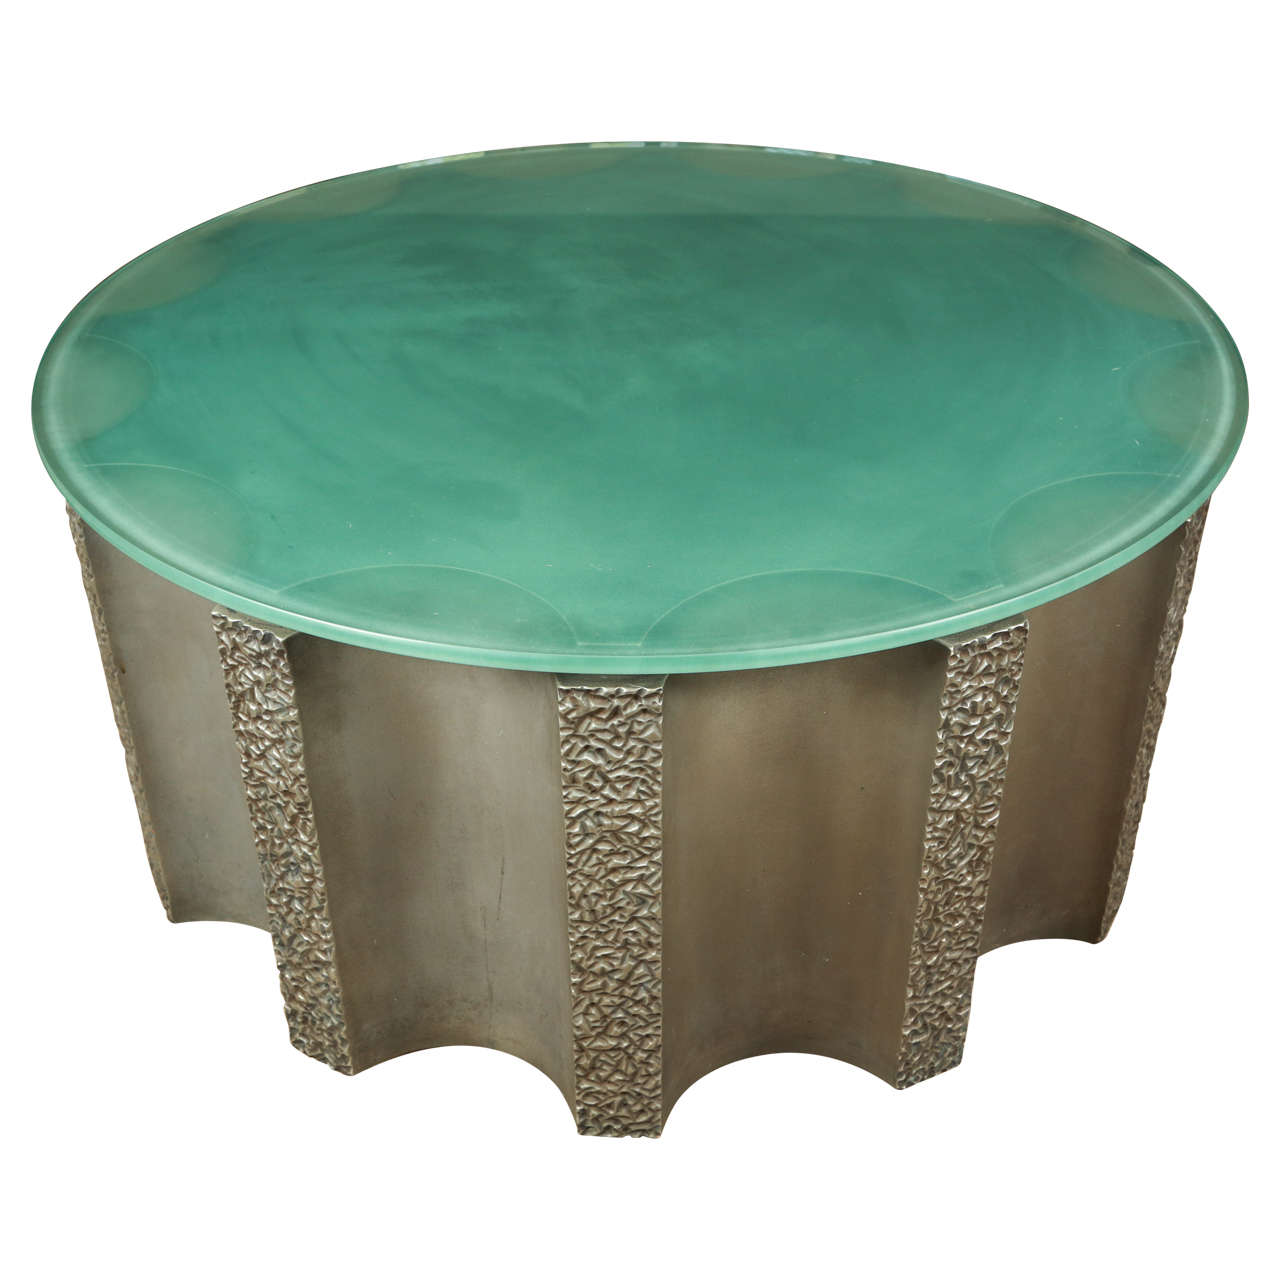 Impressive Drum Shaped Fluted Coffee Table By Steve Chase For Sale At 1stdibs